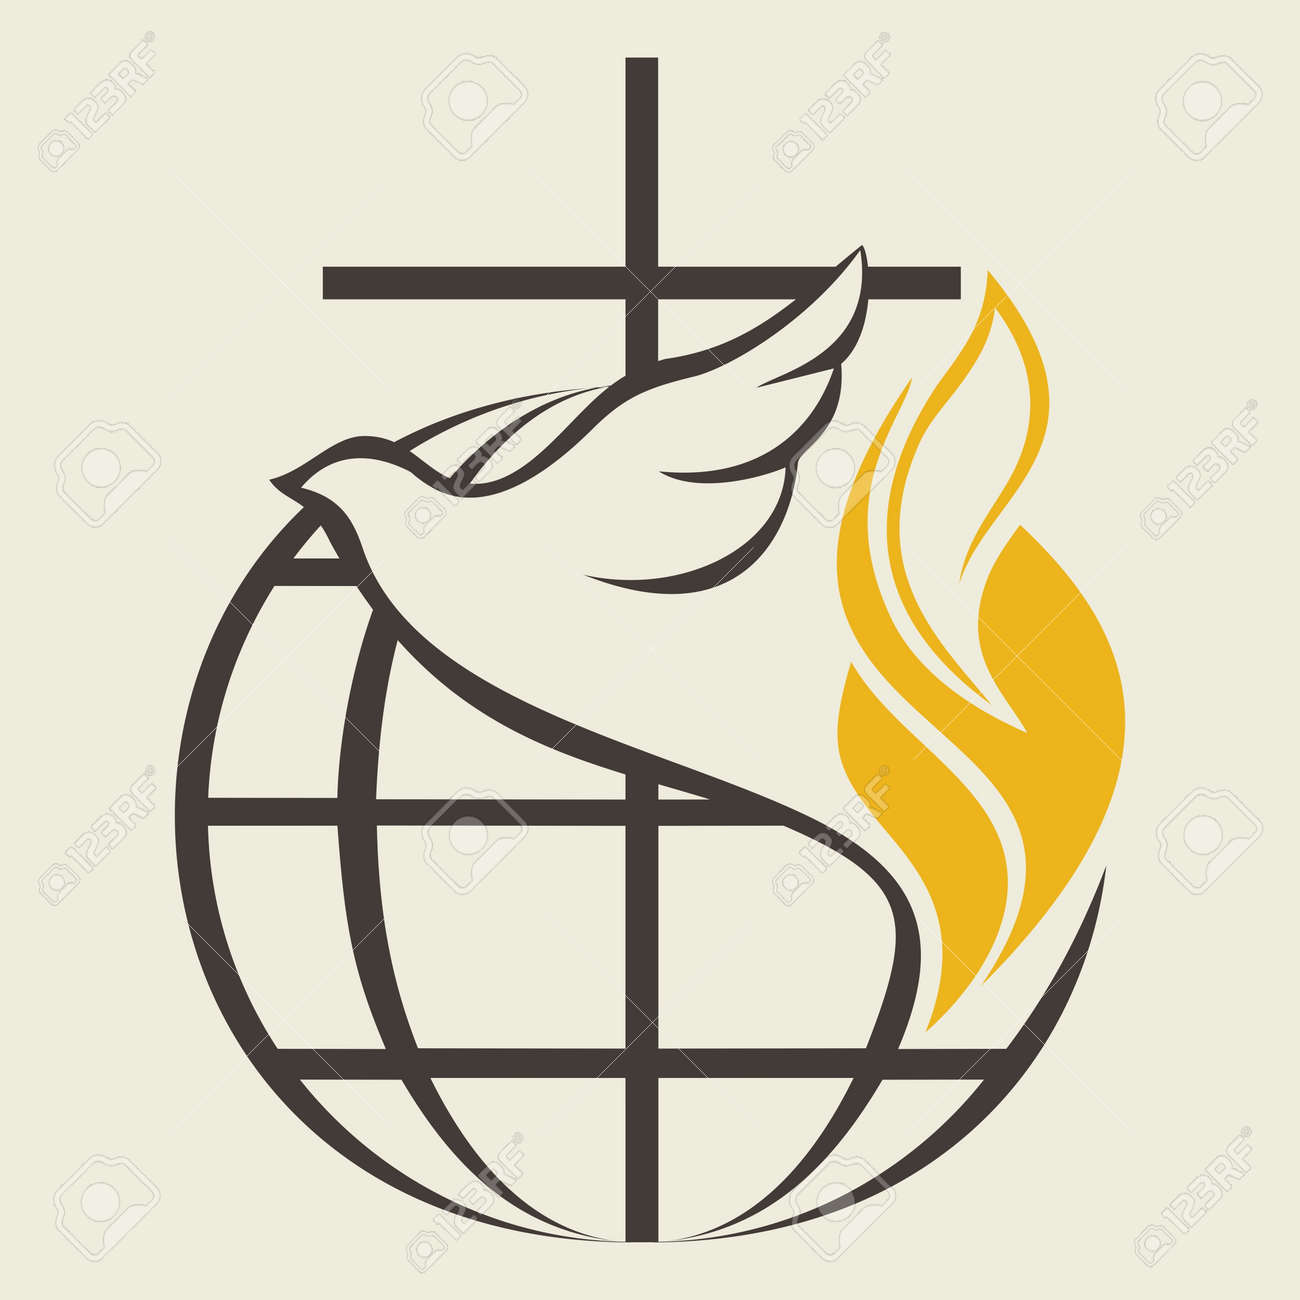 Church logo globe holy spirit dove cross flame pentecost church logo globe holy spirit dove cross flame pentecost stock altavistaventures Images